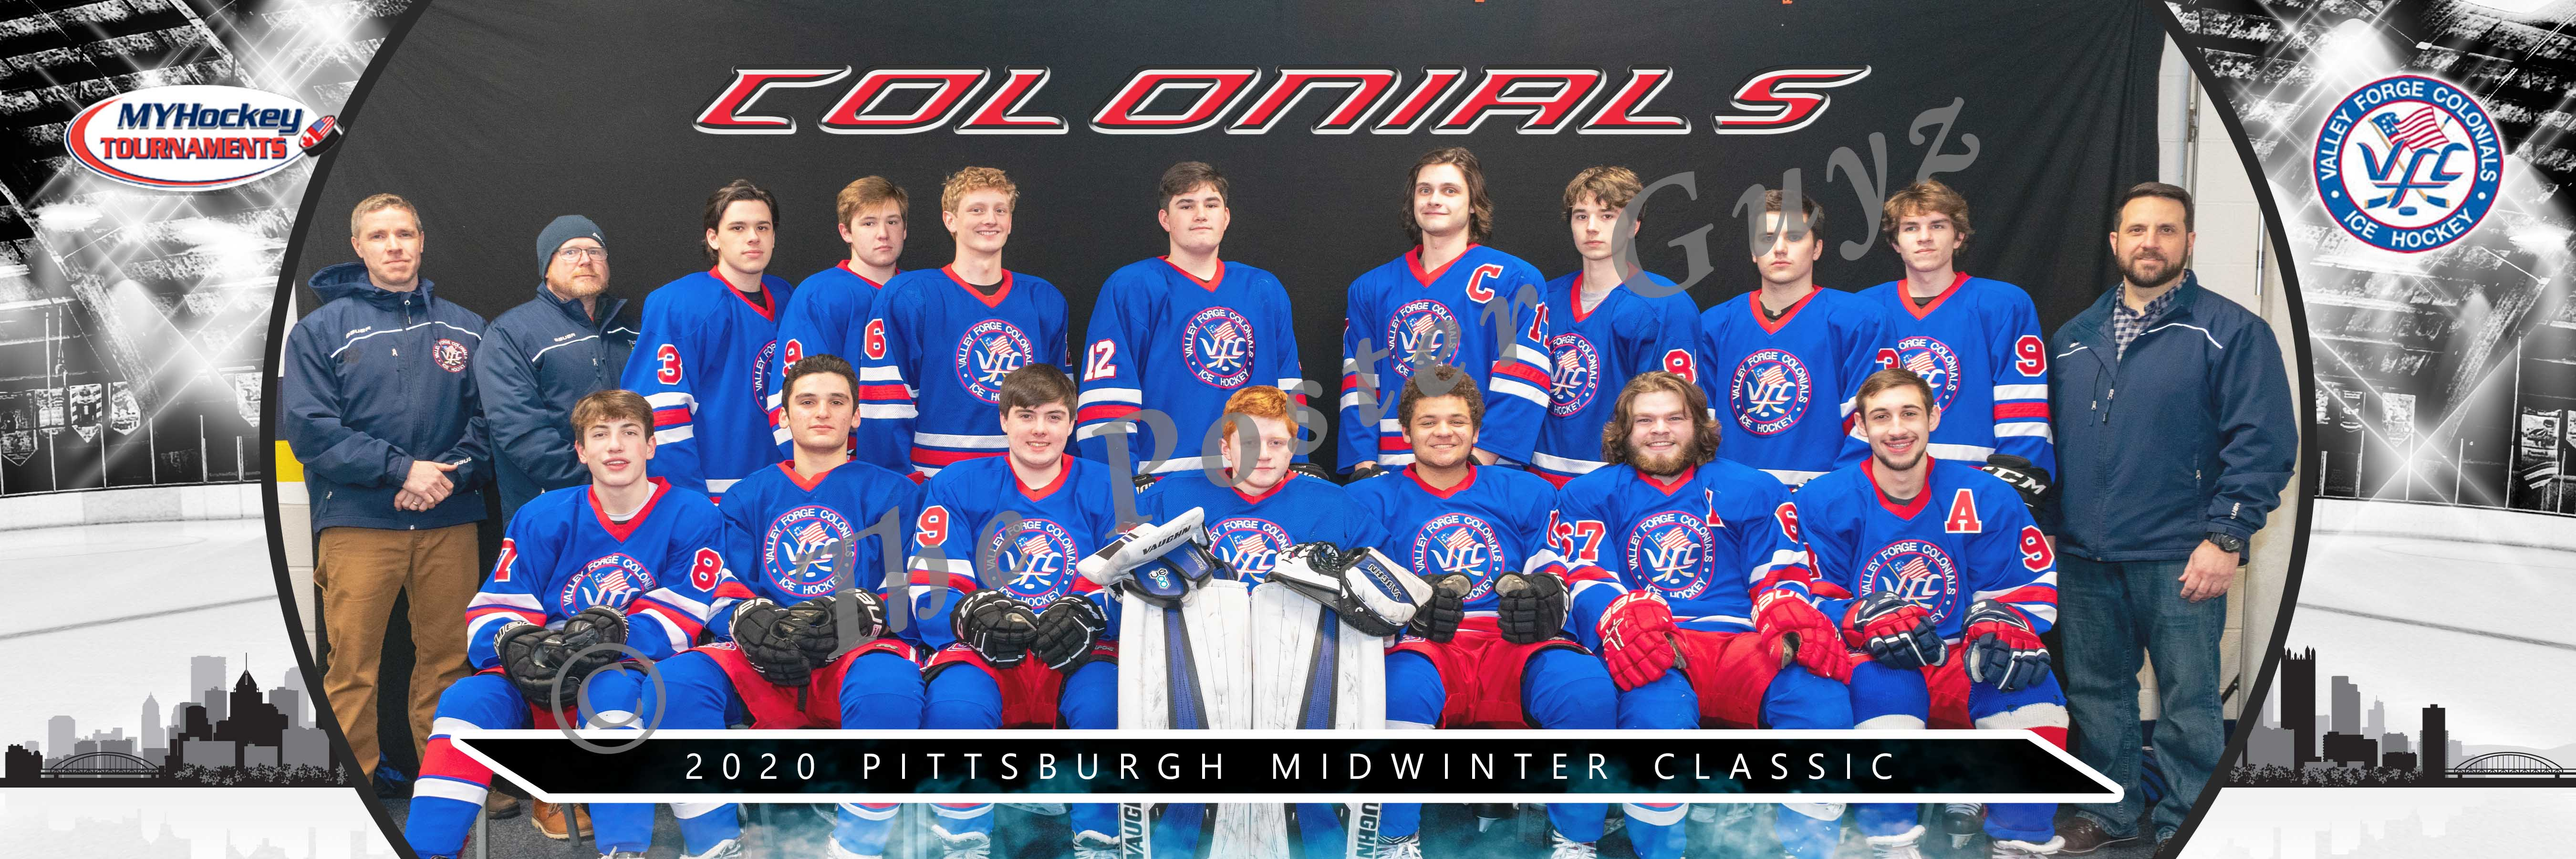 Valley Forge Colonials Midget Major A2